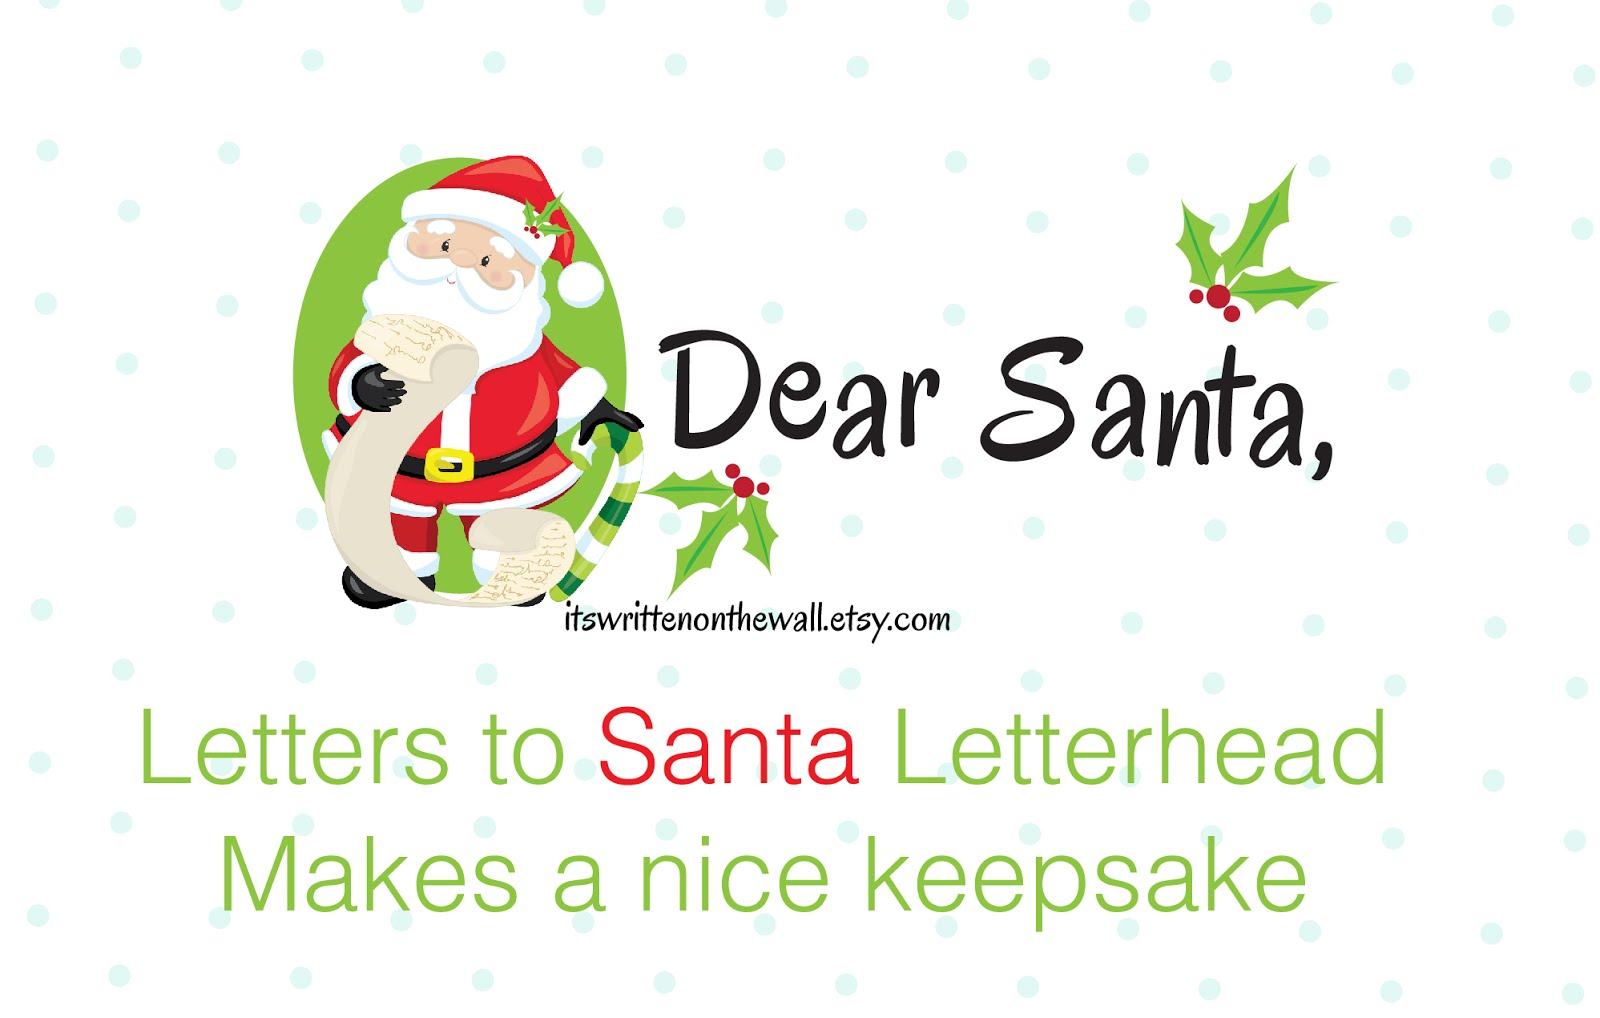 Christmas Letterhead: Letters to Santa Claus